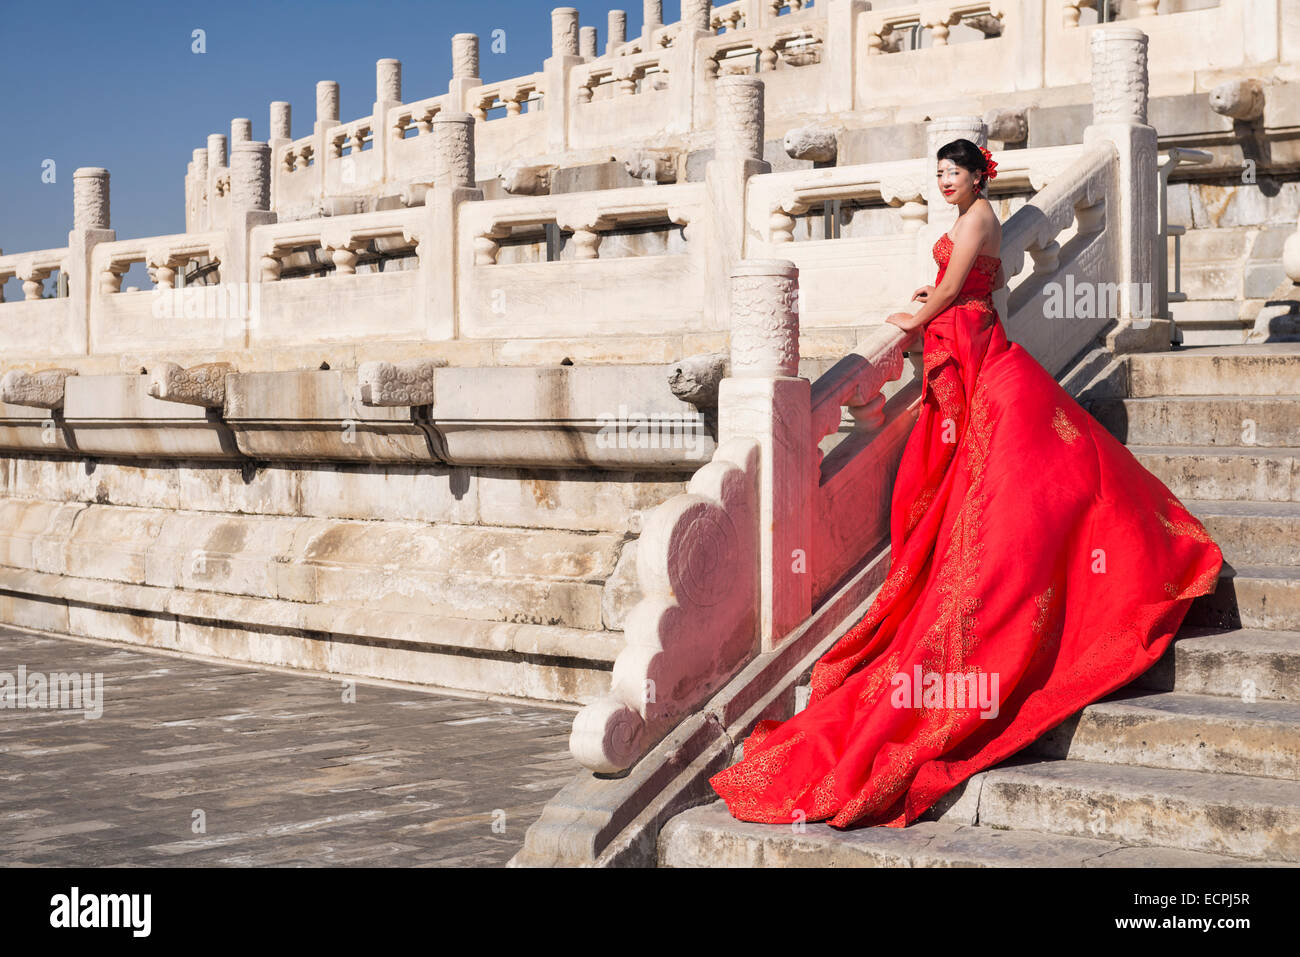 7cdecb68a Young bride in red wedding dress in front of The Temple of Heaven in  Beijing,